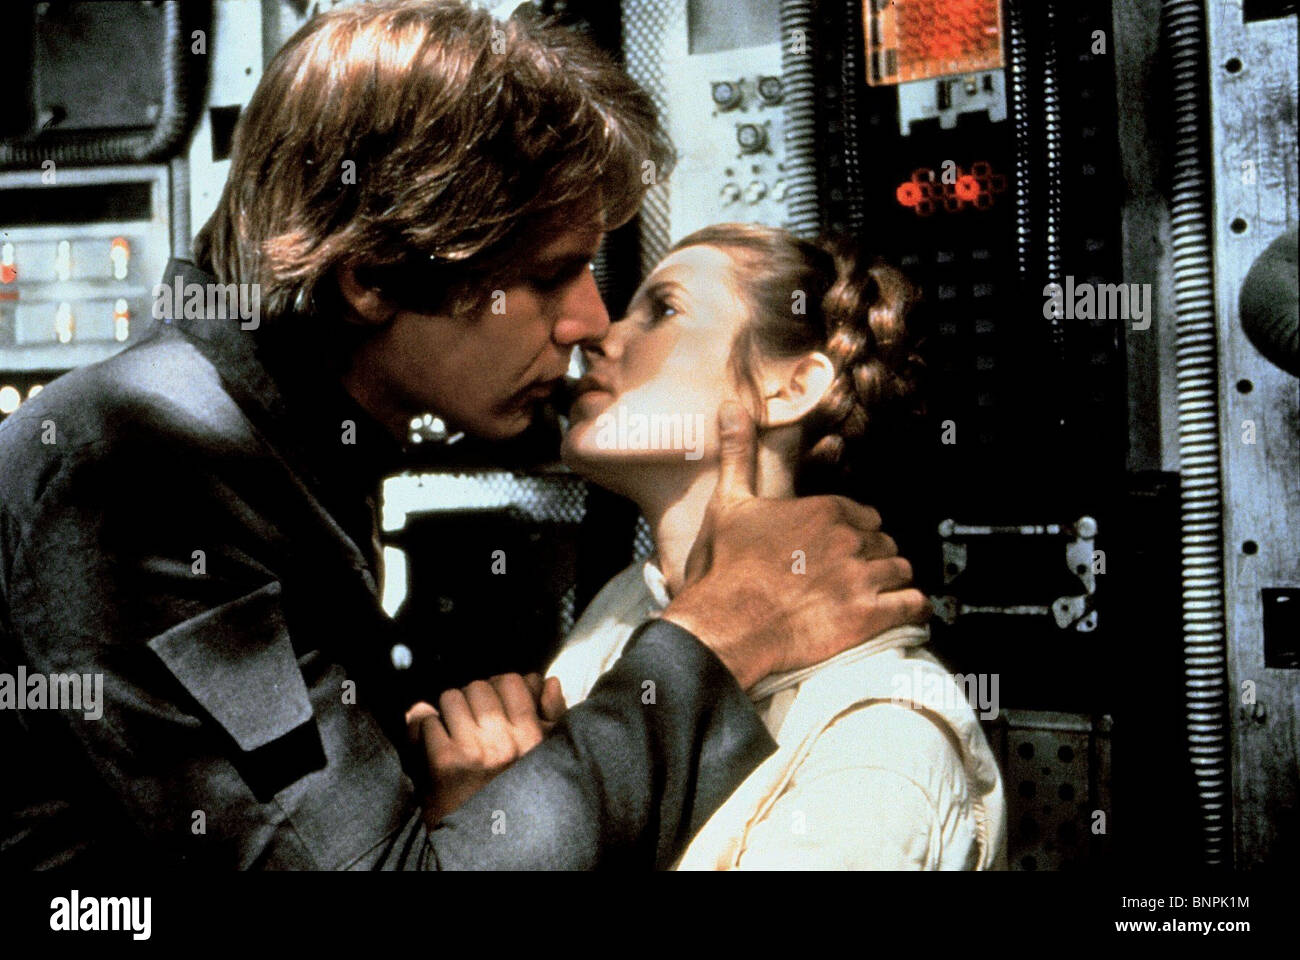 HARRISON FORD & CARRIE FISHER STAR WARS: THE EMPIRE STRIKES BACK; STAR WARS: EPISODE V - THE EMPIRE STRIKES - Stock Image